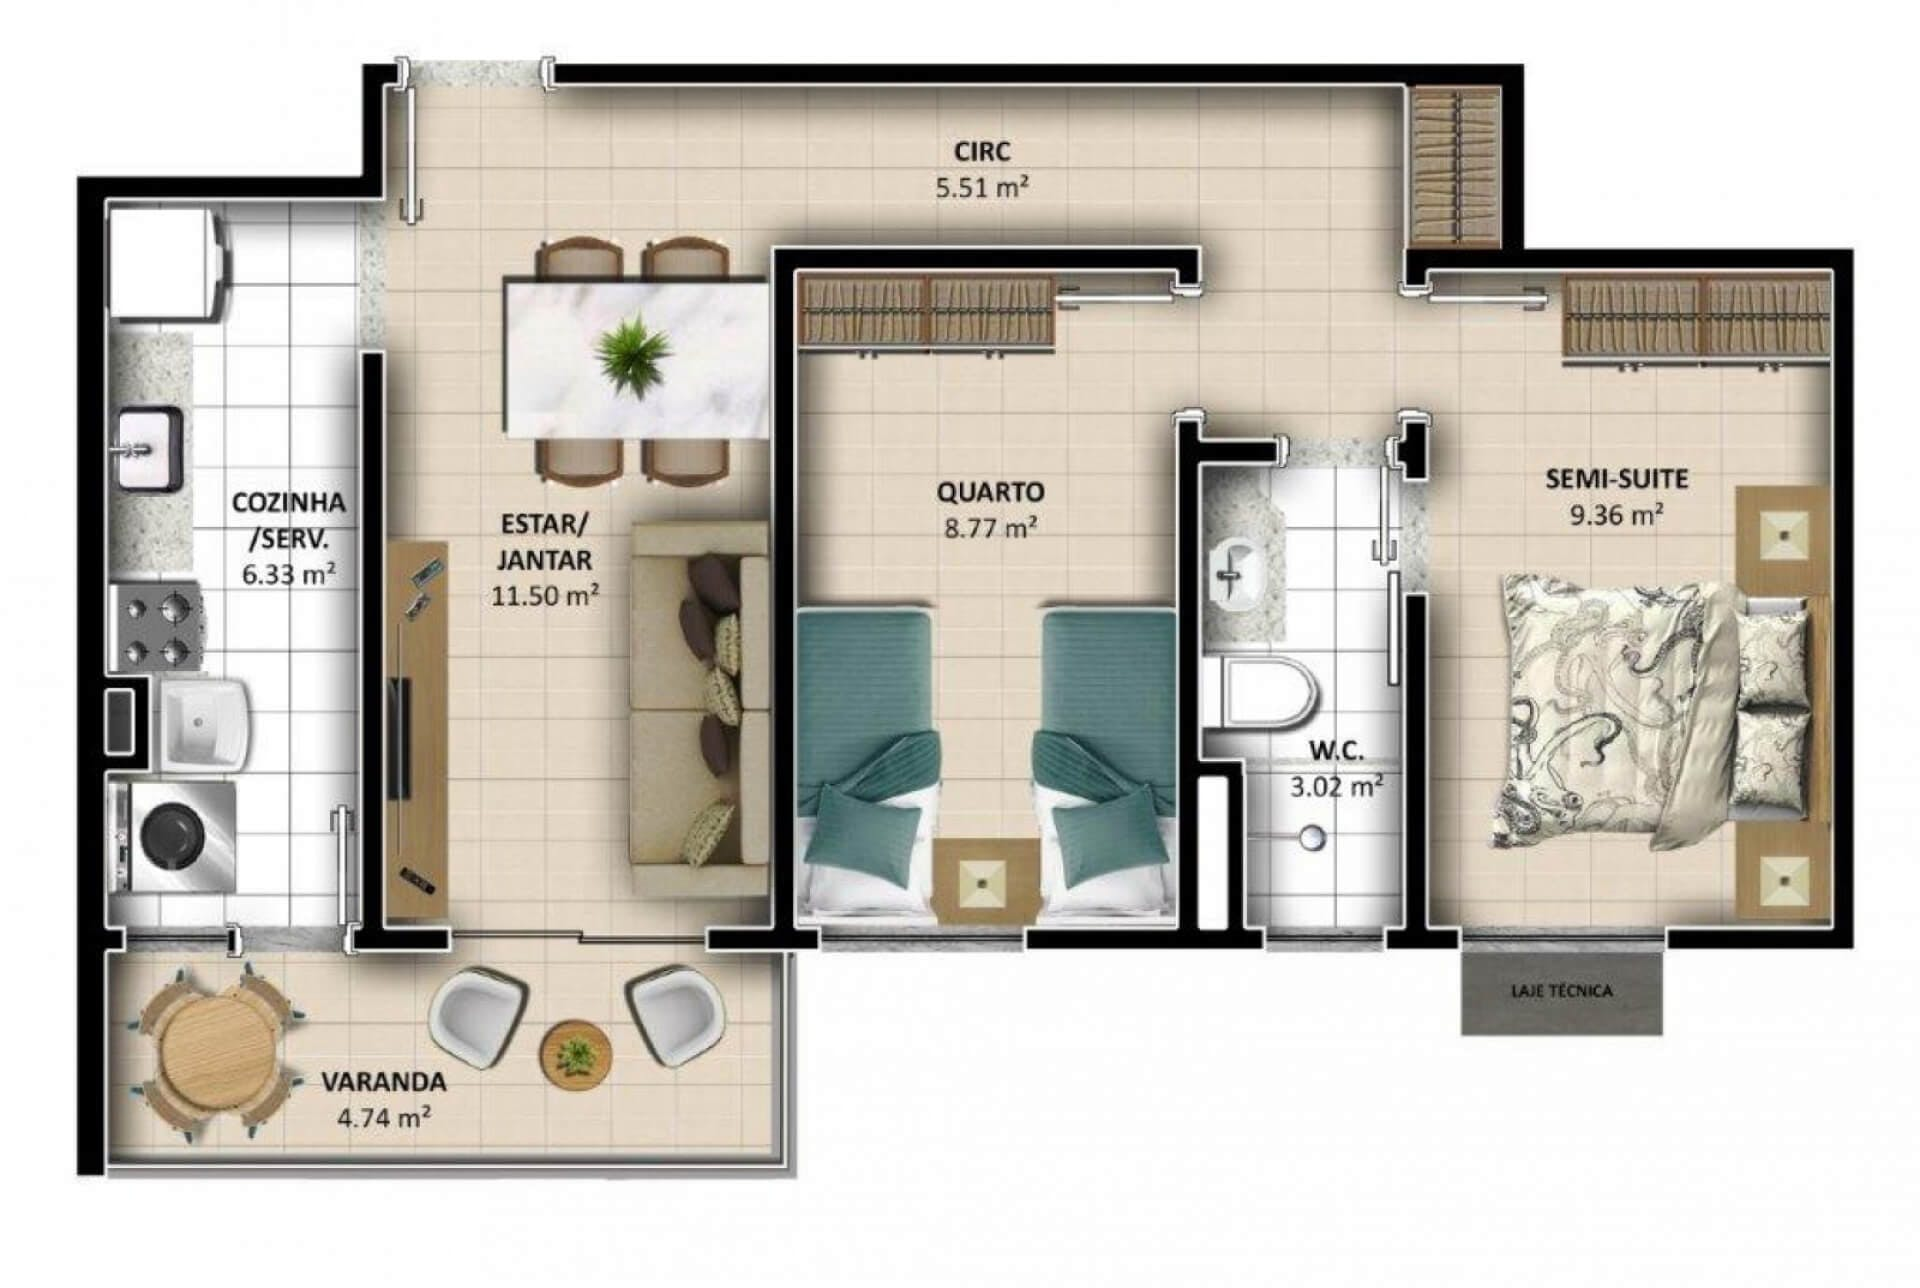 Planta do Aquarela Parque. floorplan